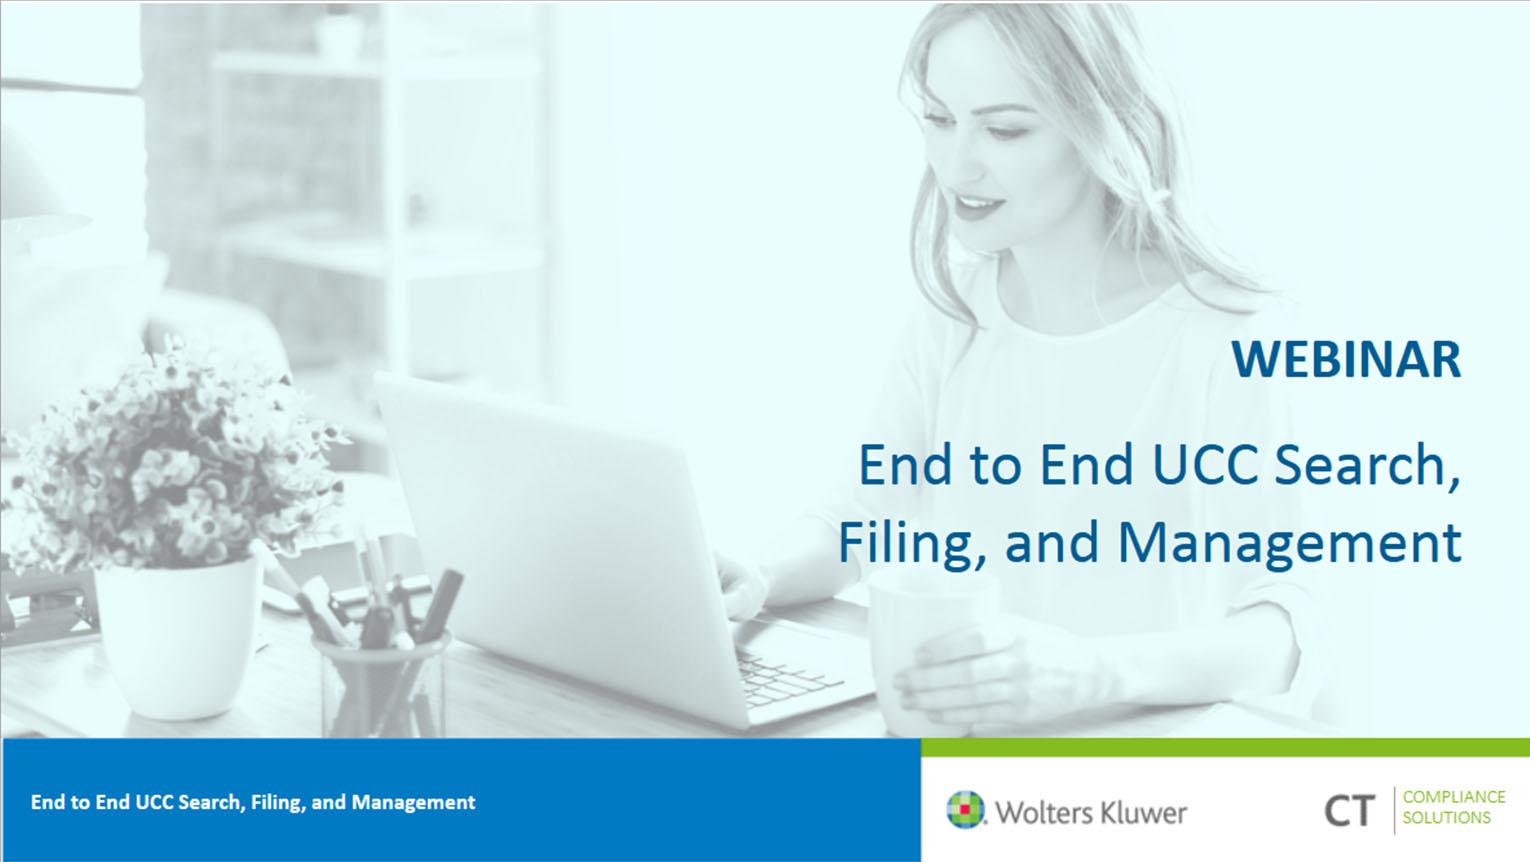 End-to-End UCC Search, Filing, and Management Webinar